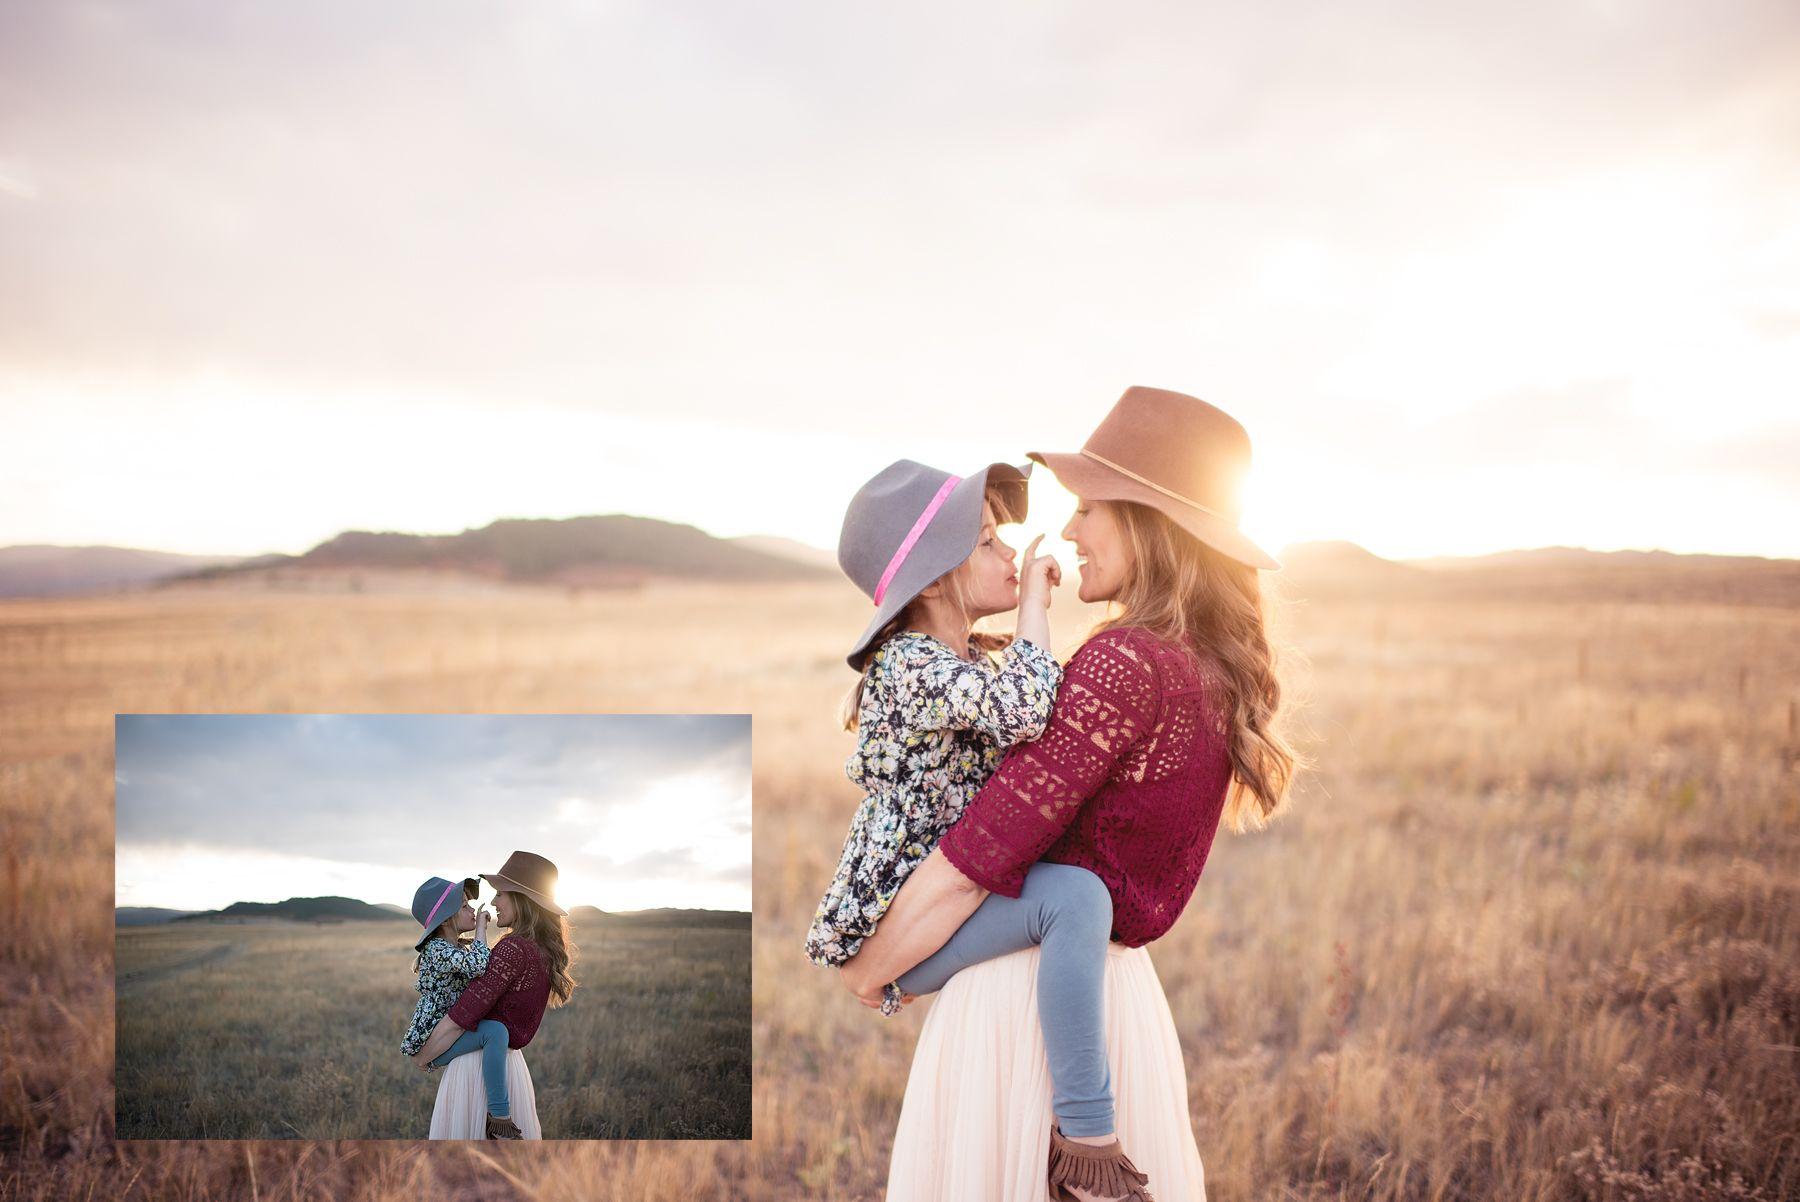 FREE Watch me edit light/bright and airy in Photoshop